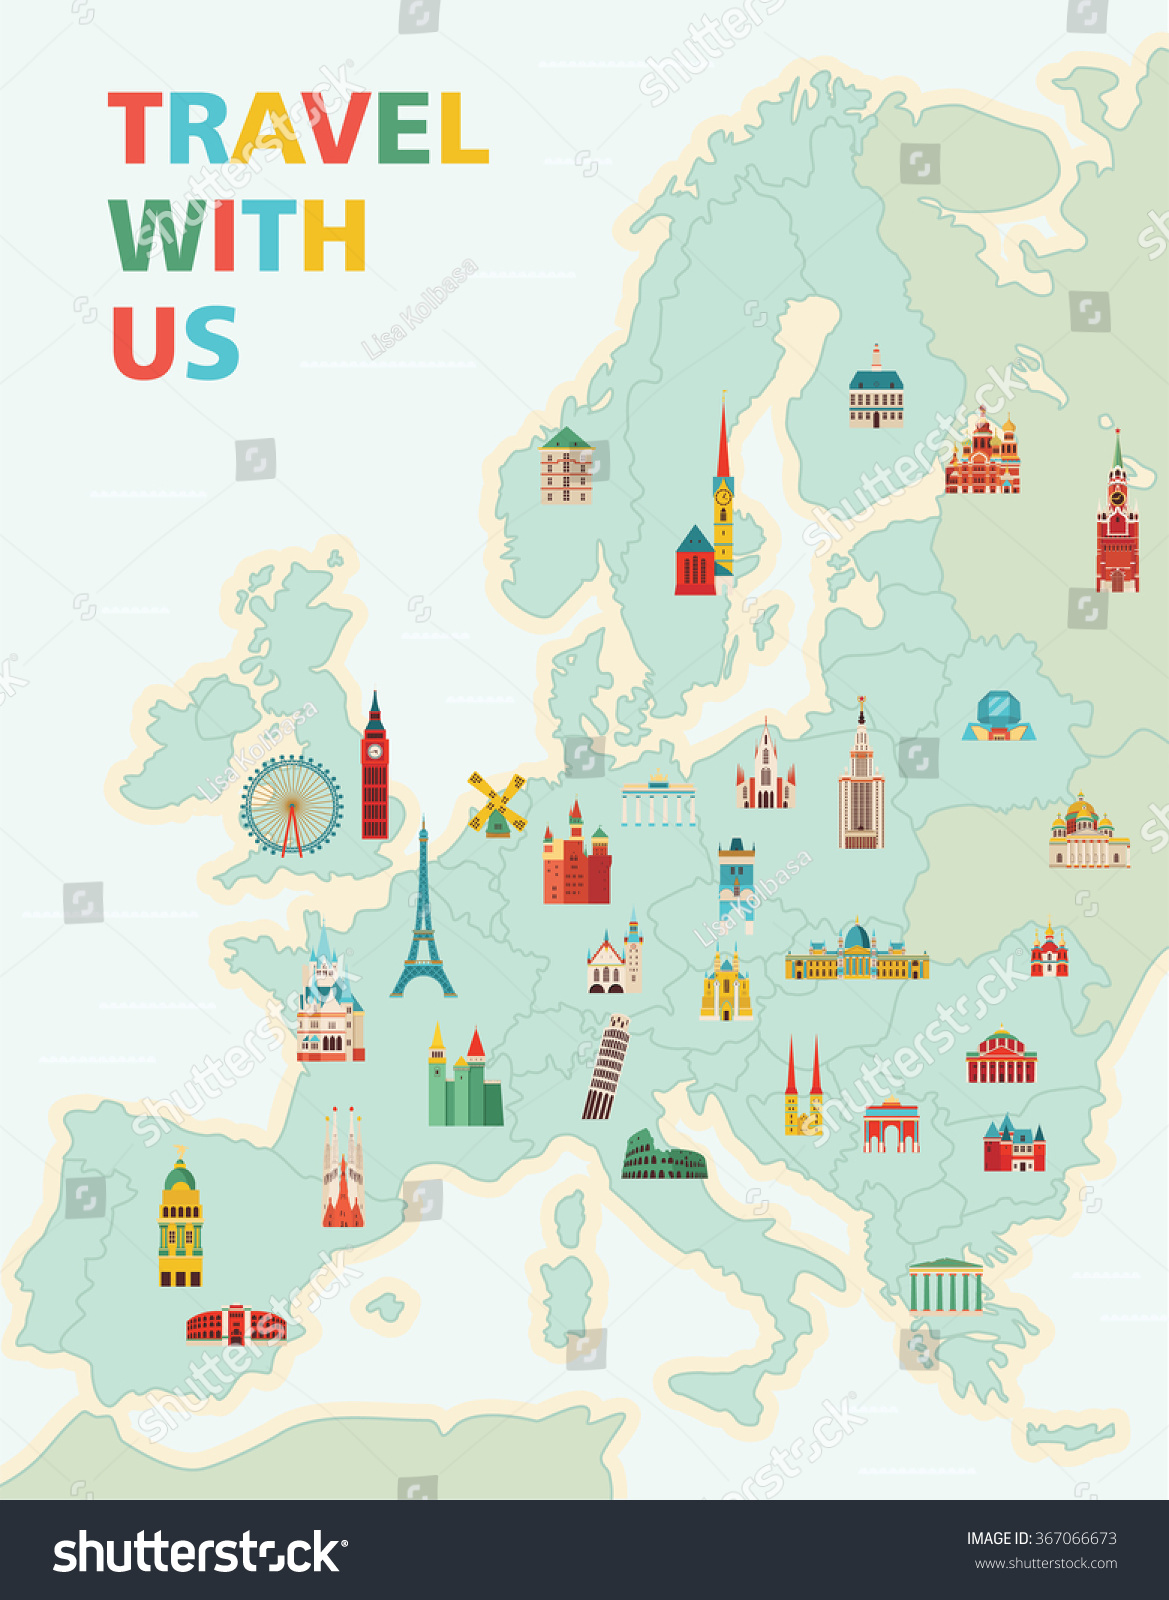 Europe Map Famous Monuments Travel Tourism Stock Vector - Travel europe from us map